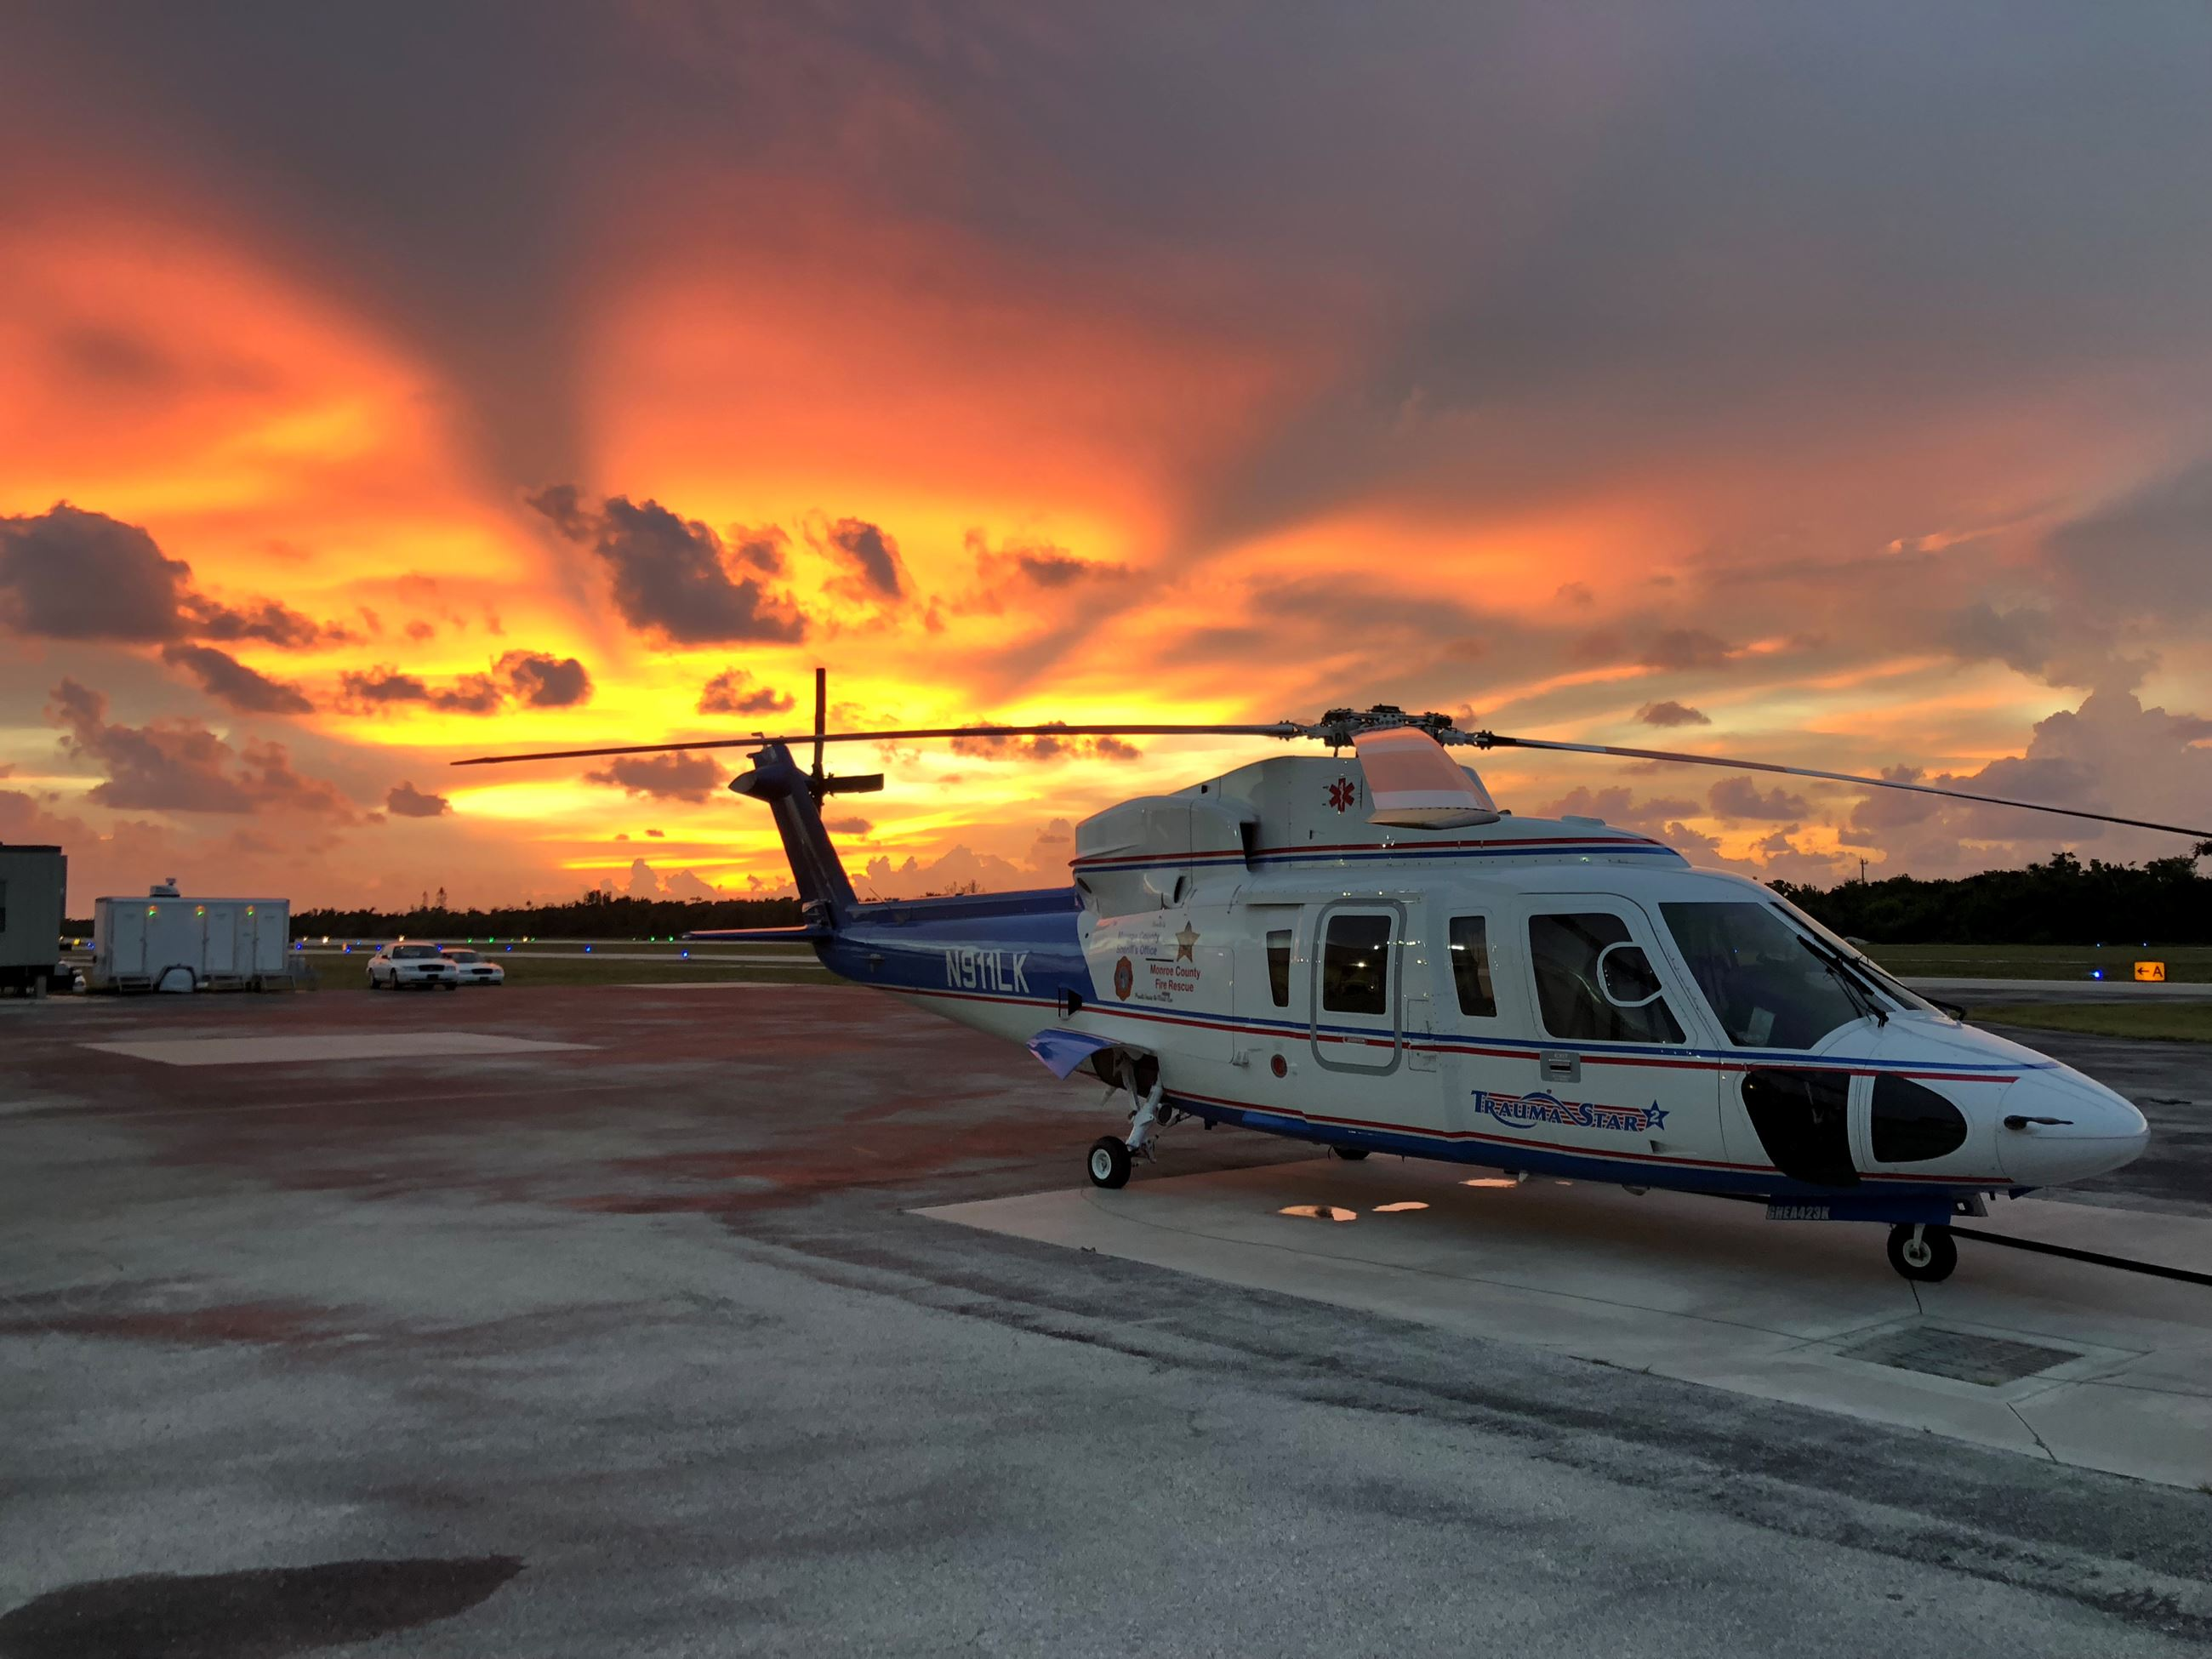 Photo of Trauma Star air ambulance at Marathon hangar during sunset